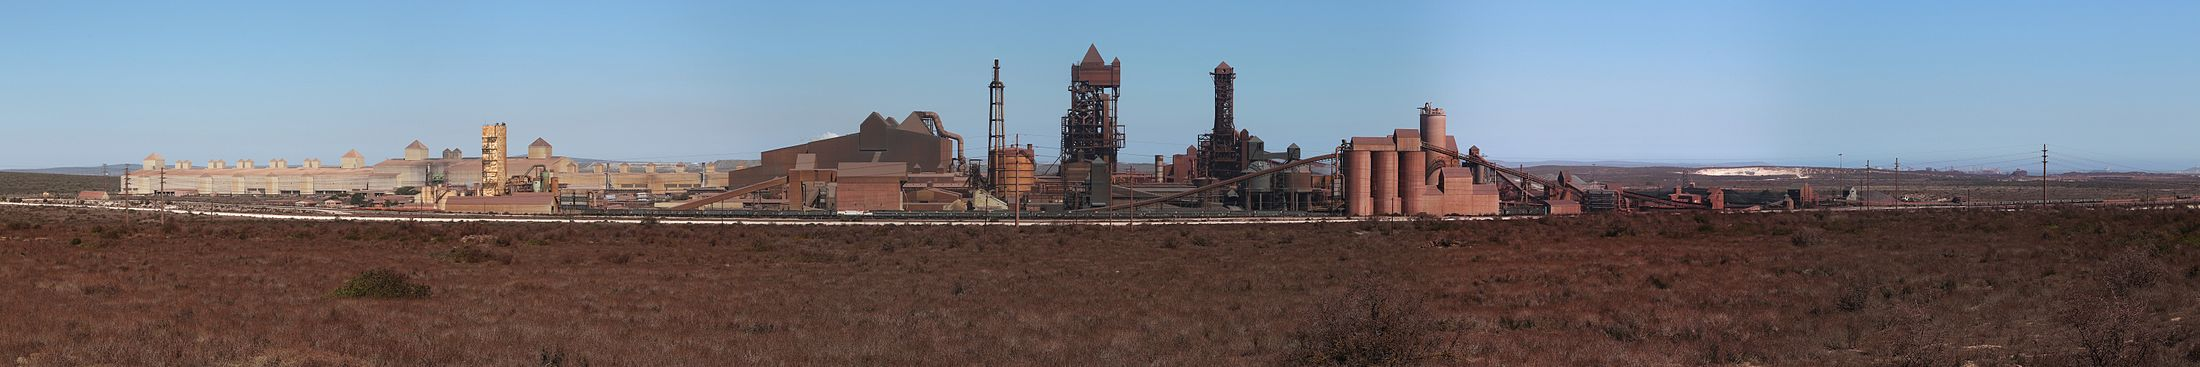 Saldanha South Africa  city photos : The story of Saldanha Works | Thinksteel ArcelorMittal South Africa ...